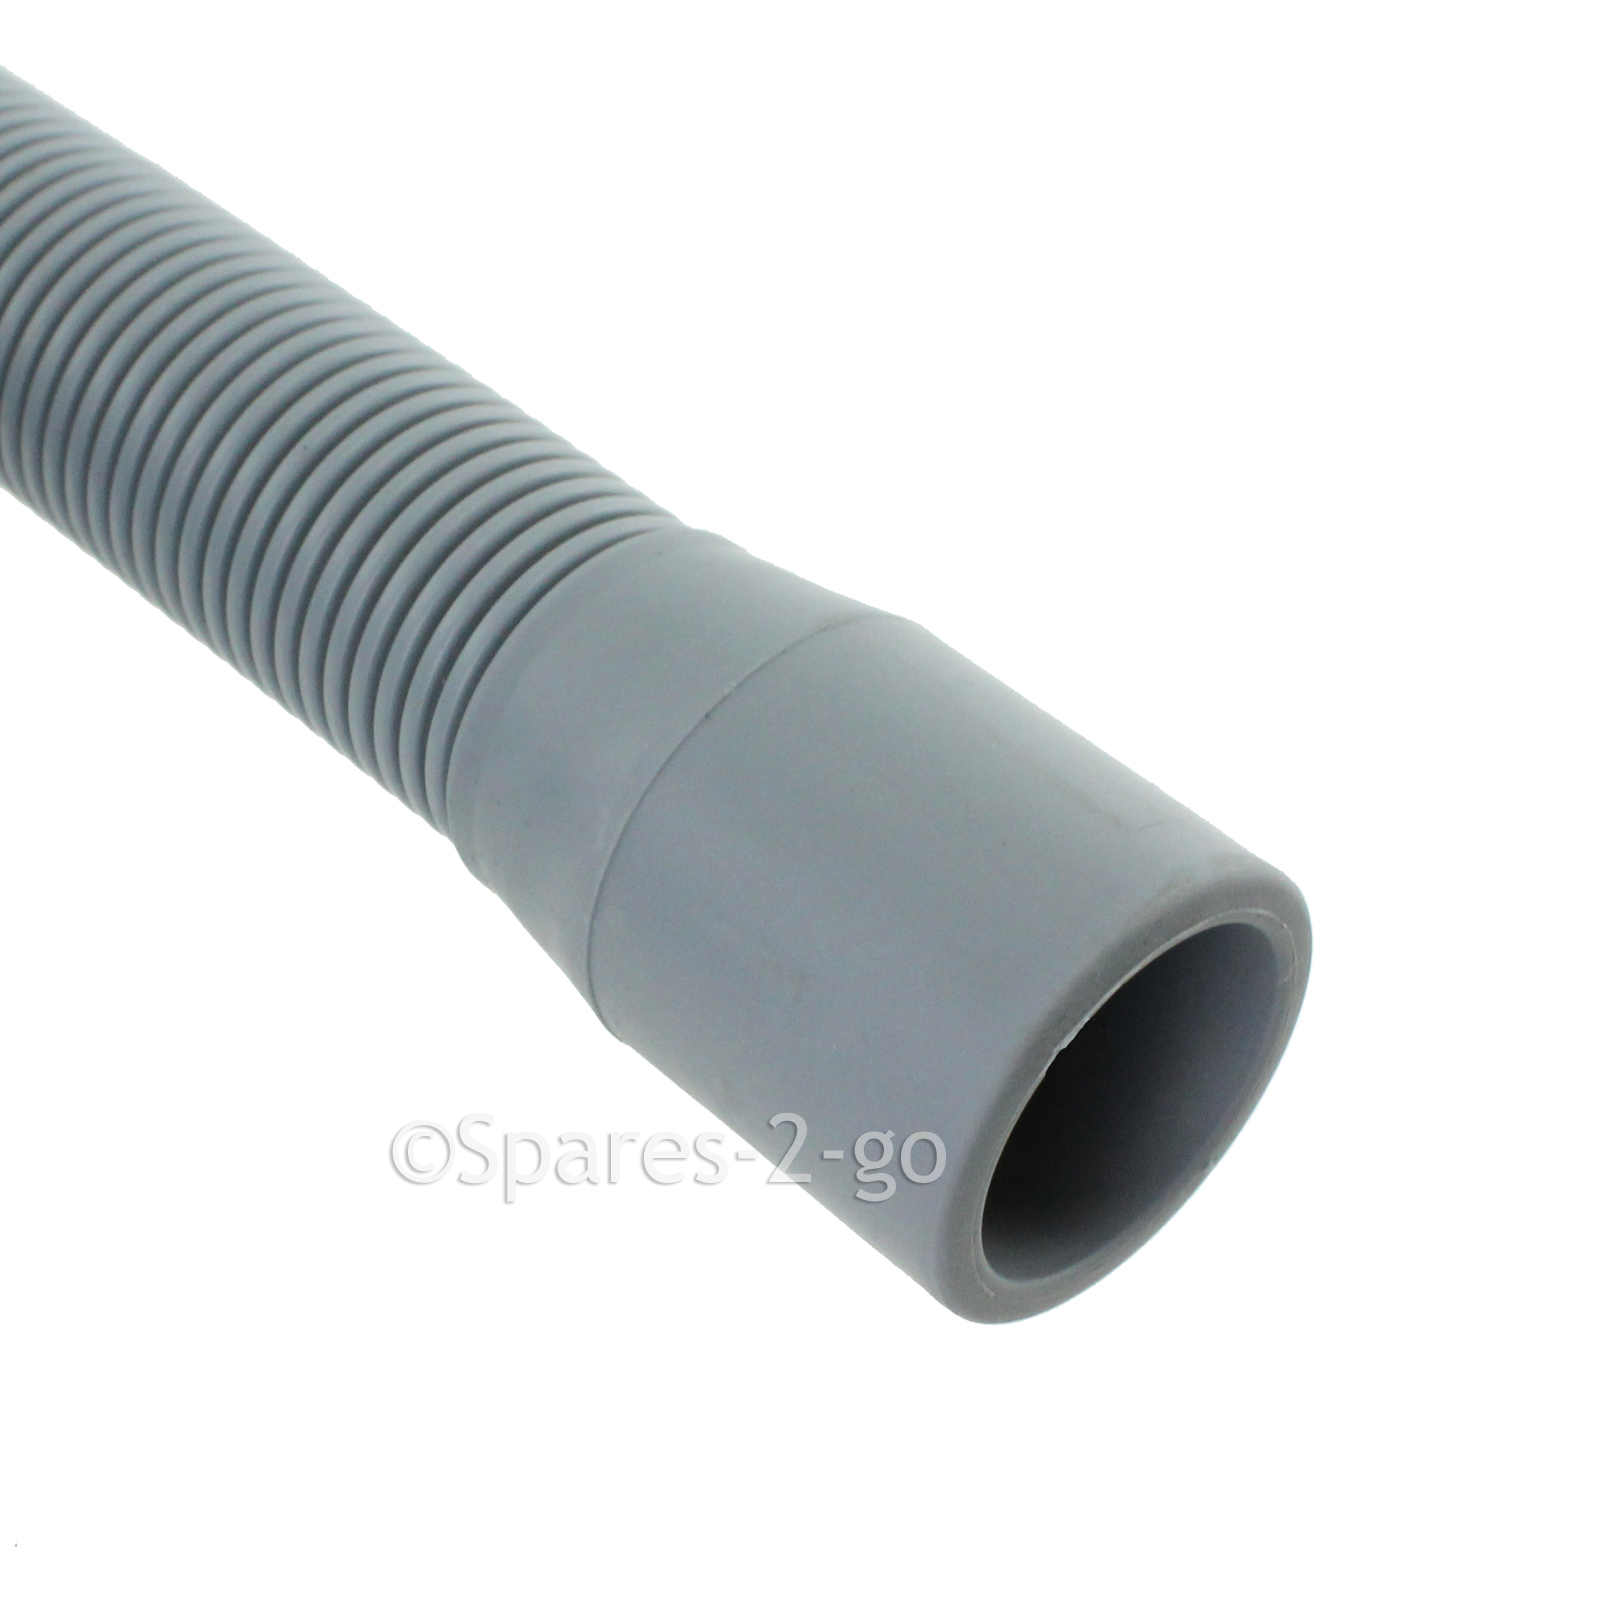 Bosch dishwasher fill water pipe drain outlet hose universal extension ebay - Bosch dishwasher pump not draining ...